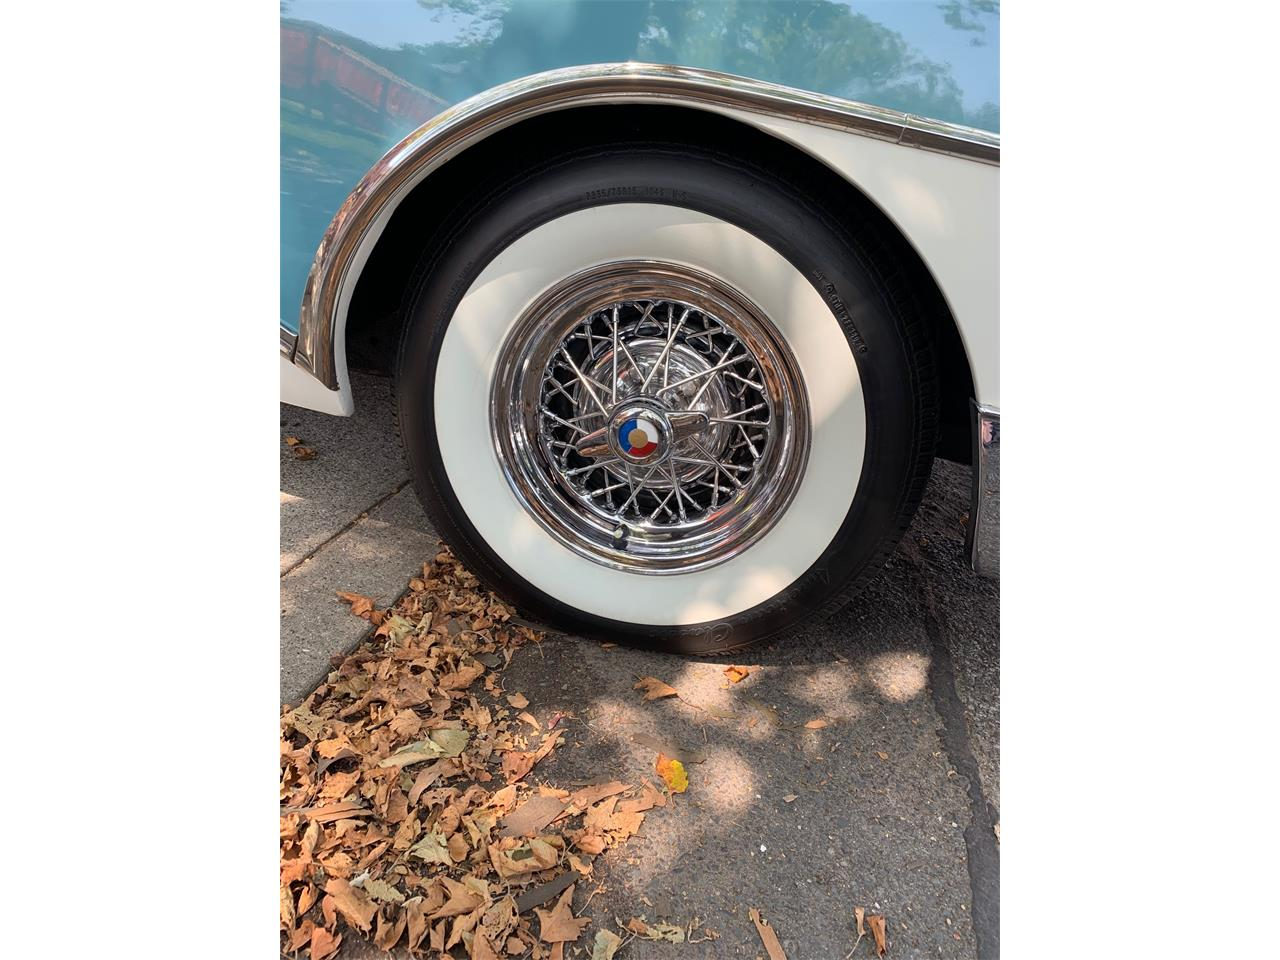 1955 Buick Roadmaster for sale in STATEN ISLAND, NY – photo 10